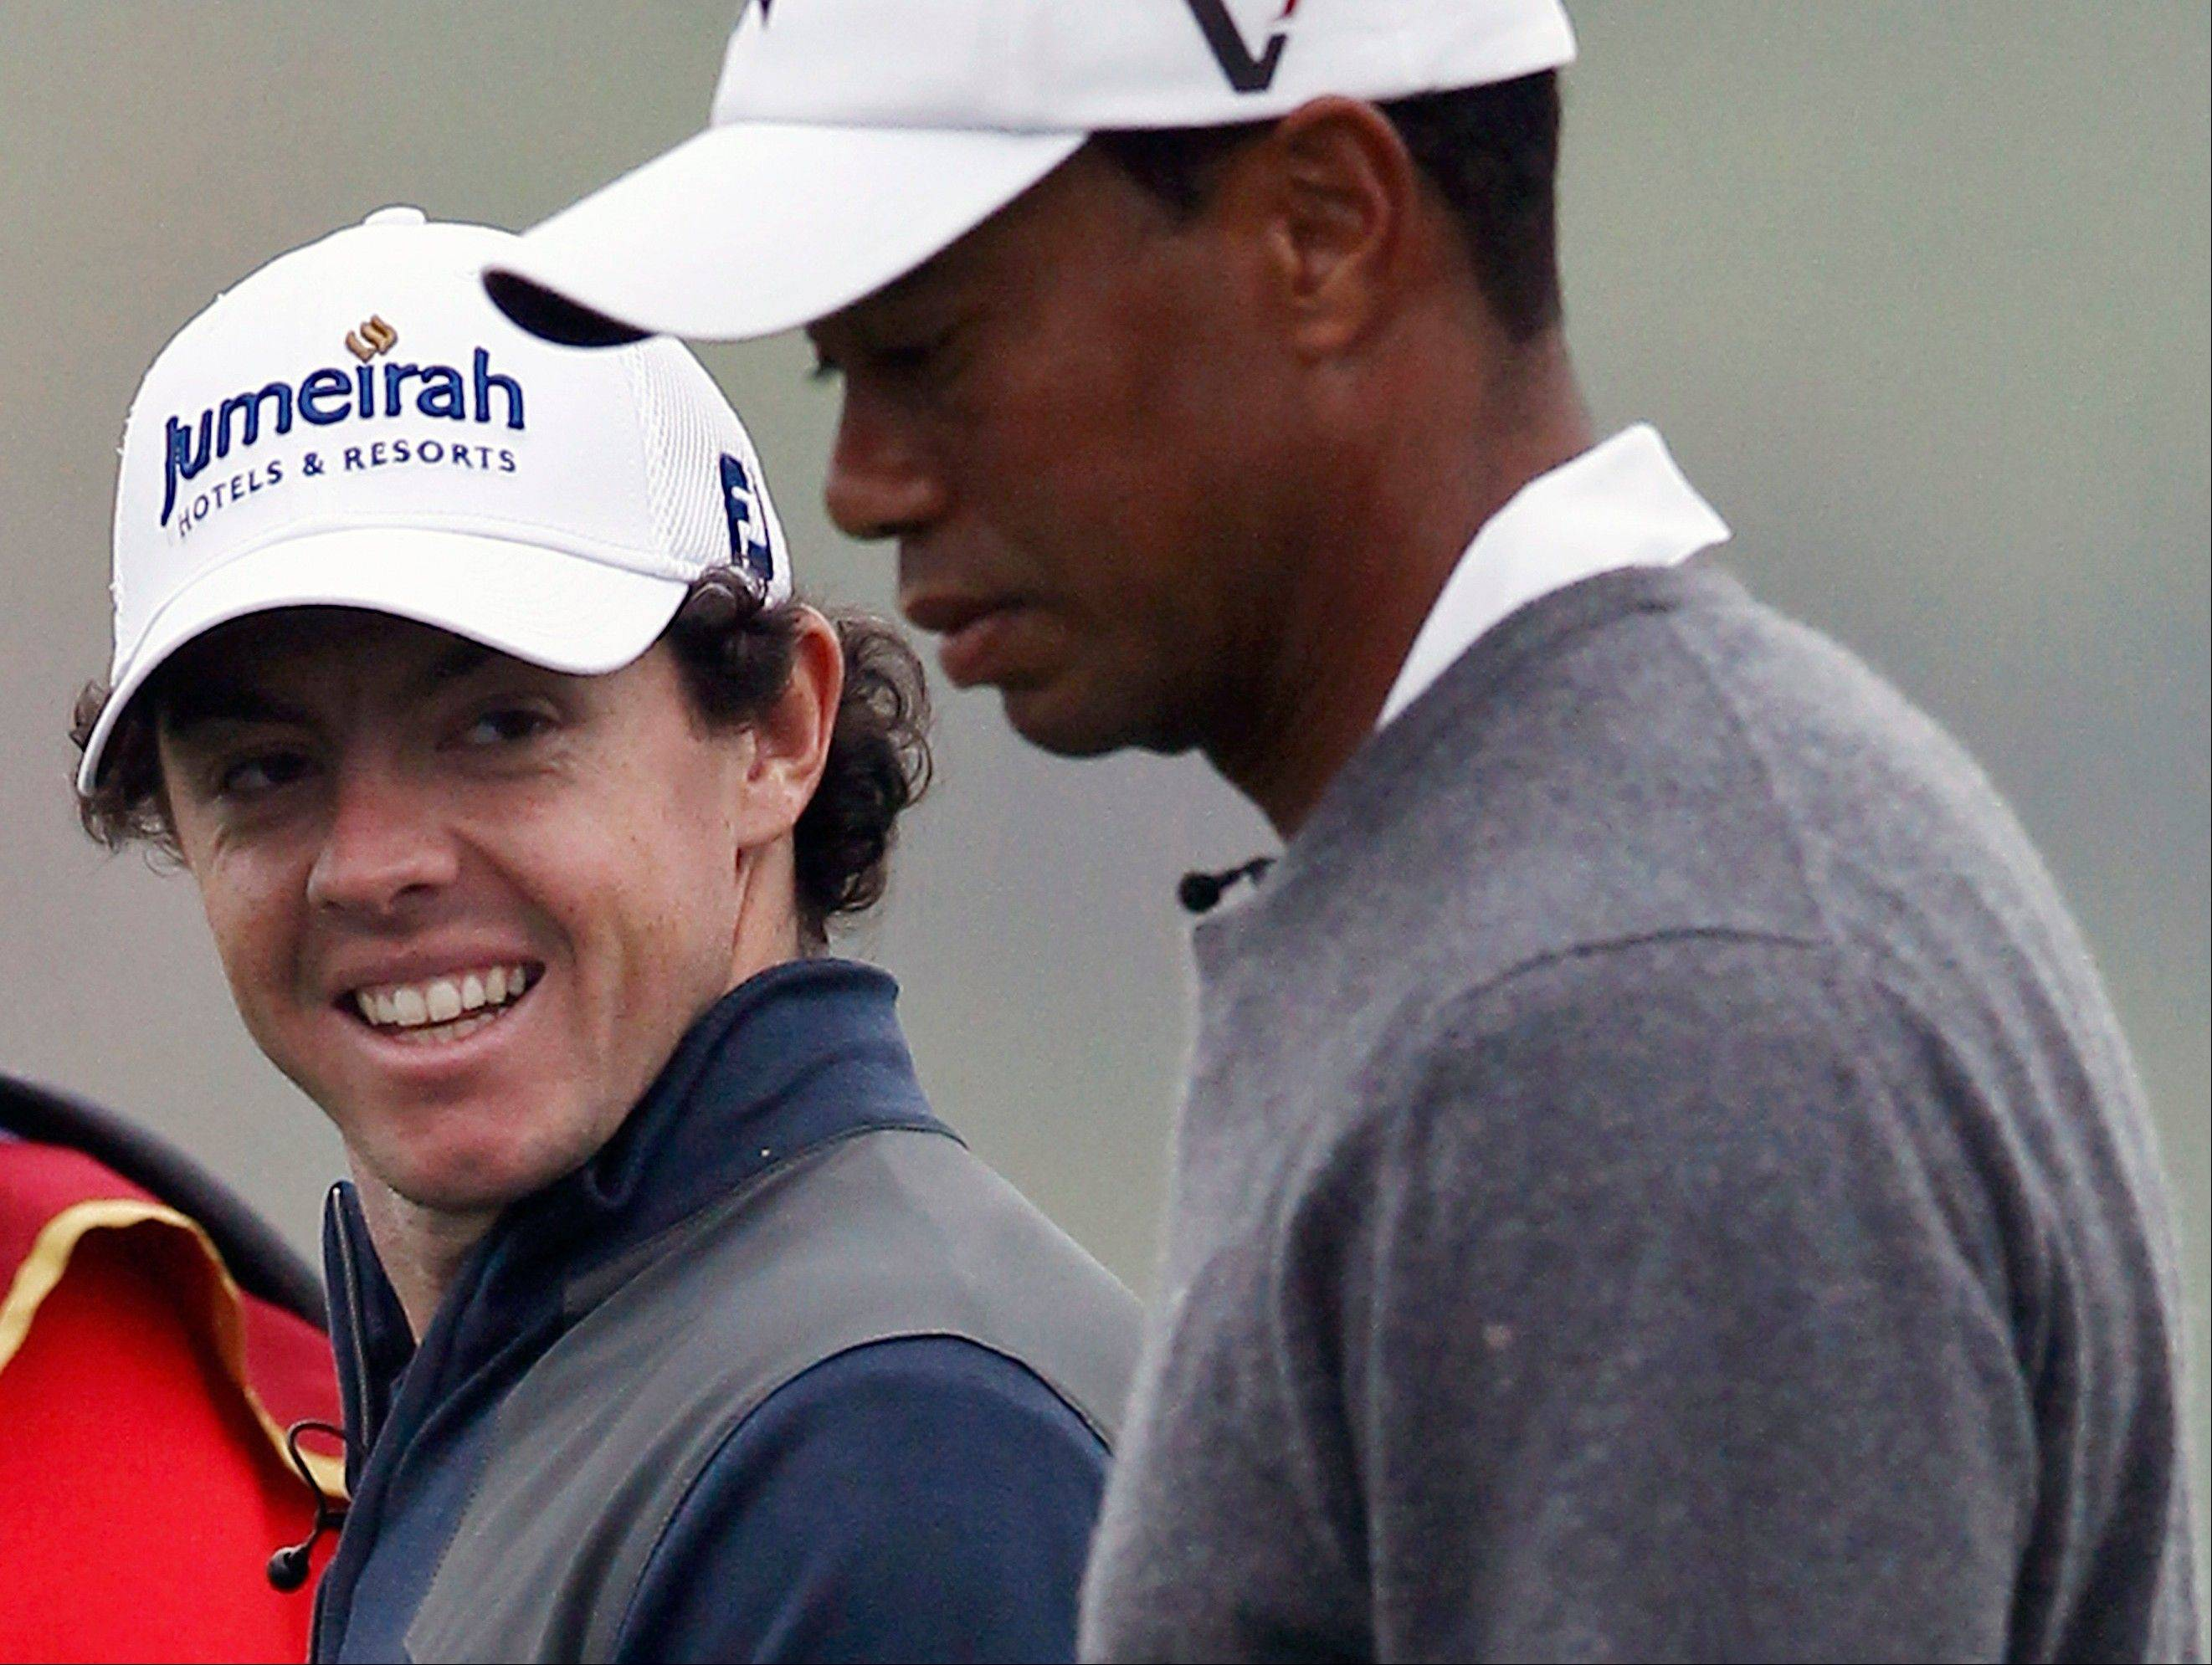 Tiger Woods, right, and Rory McIlroy walking together during their 18-hole medal-match at the Lake Jinsha Golf Club in Zhengzhou, in central China's Henan province. McIlroy was announced Tuesday as player of the year, and while the tour does not disclose the vote of its players, this was the equivalent of a tap-in.